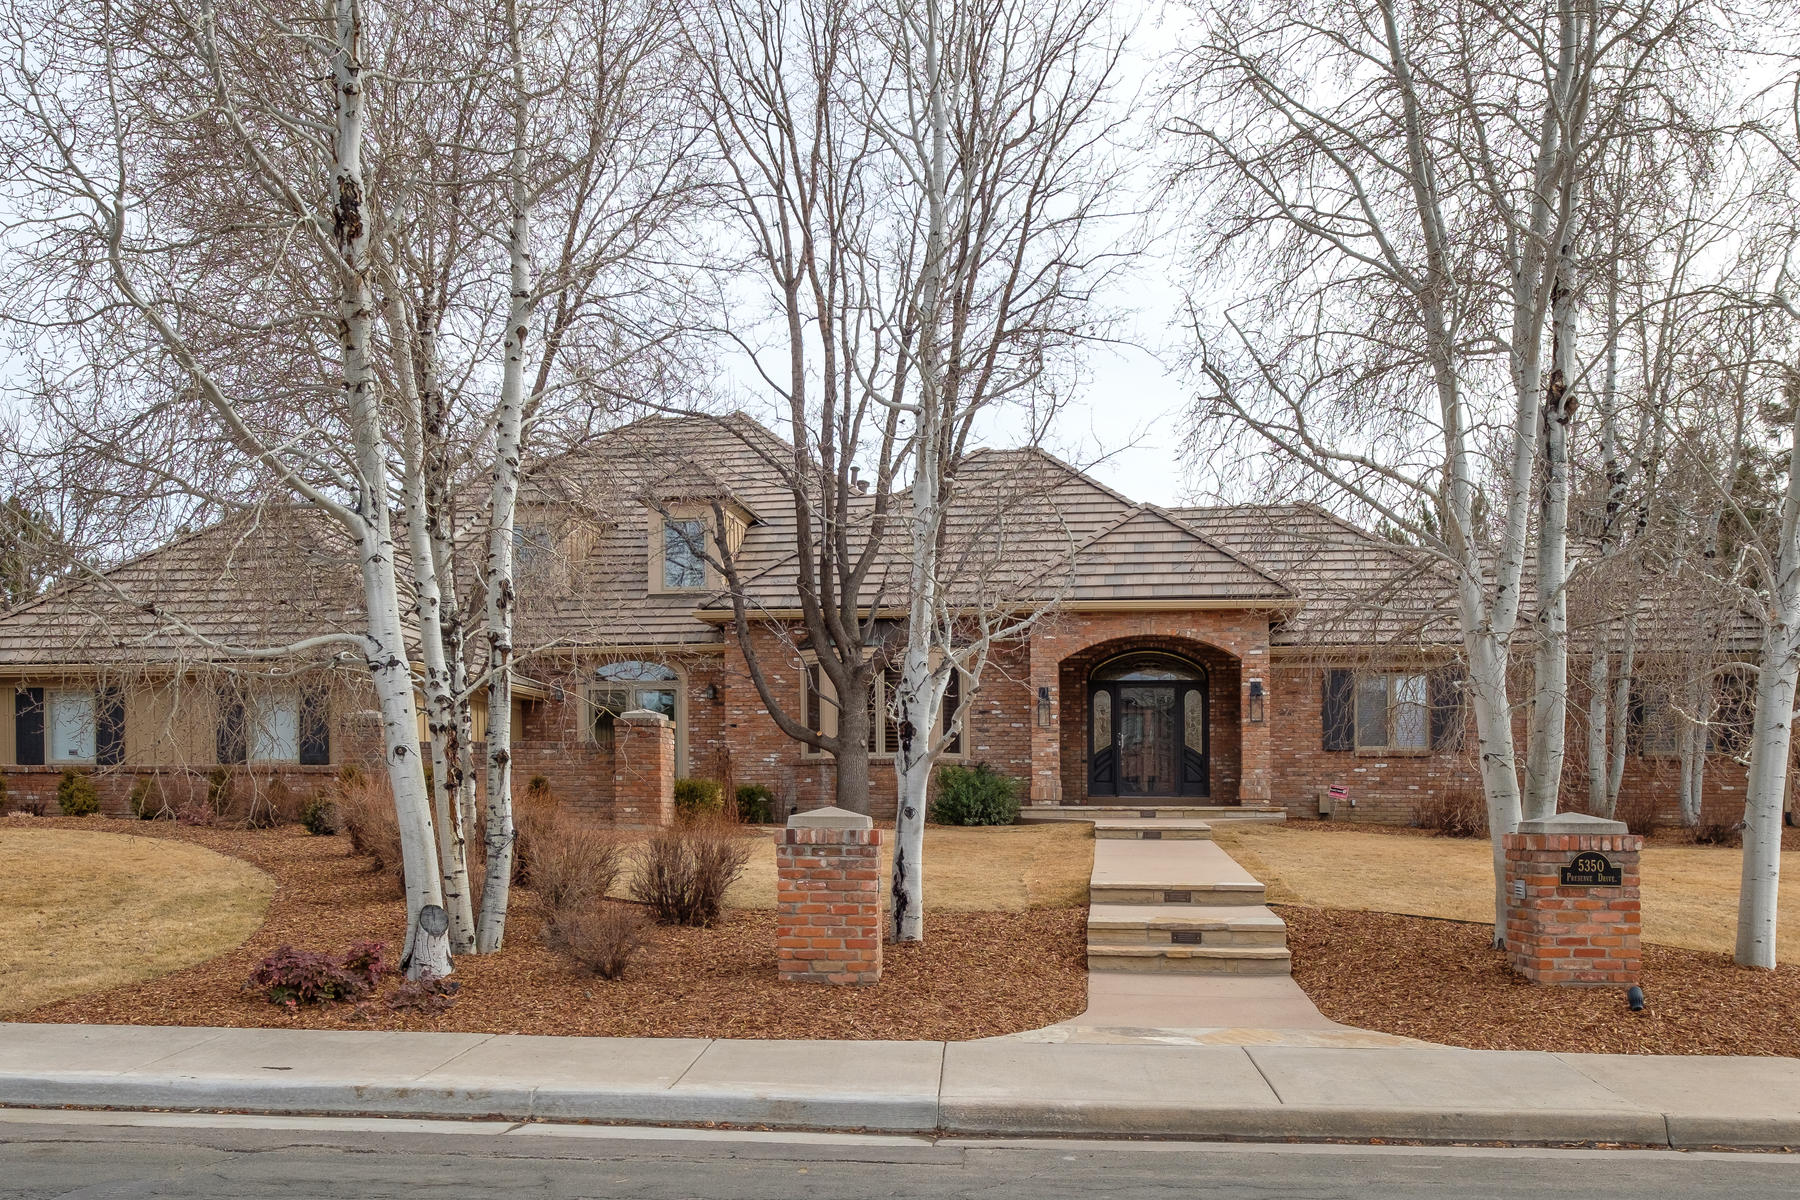 Single Family Home for Sale at 5350 Preserve Drive 5350 Preserve Drive Greenwood Village, Colorado 80121 United States